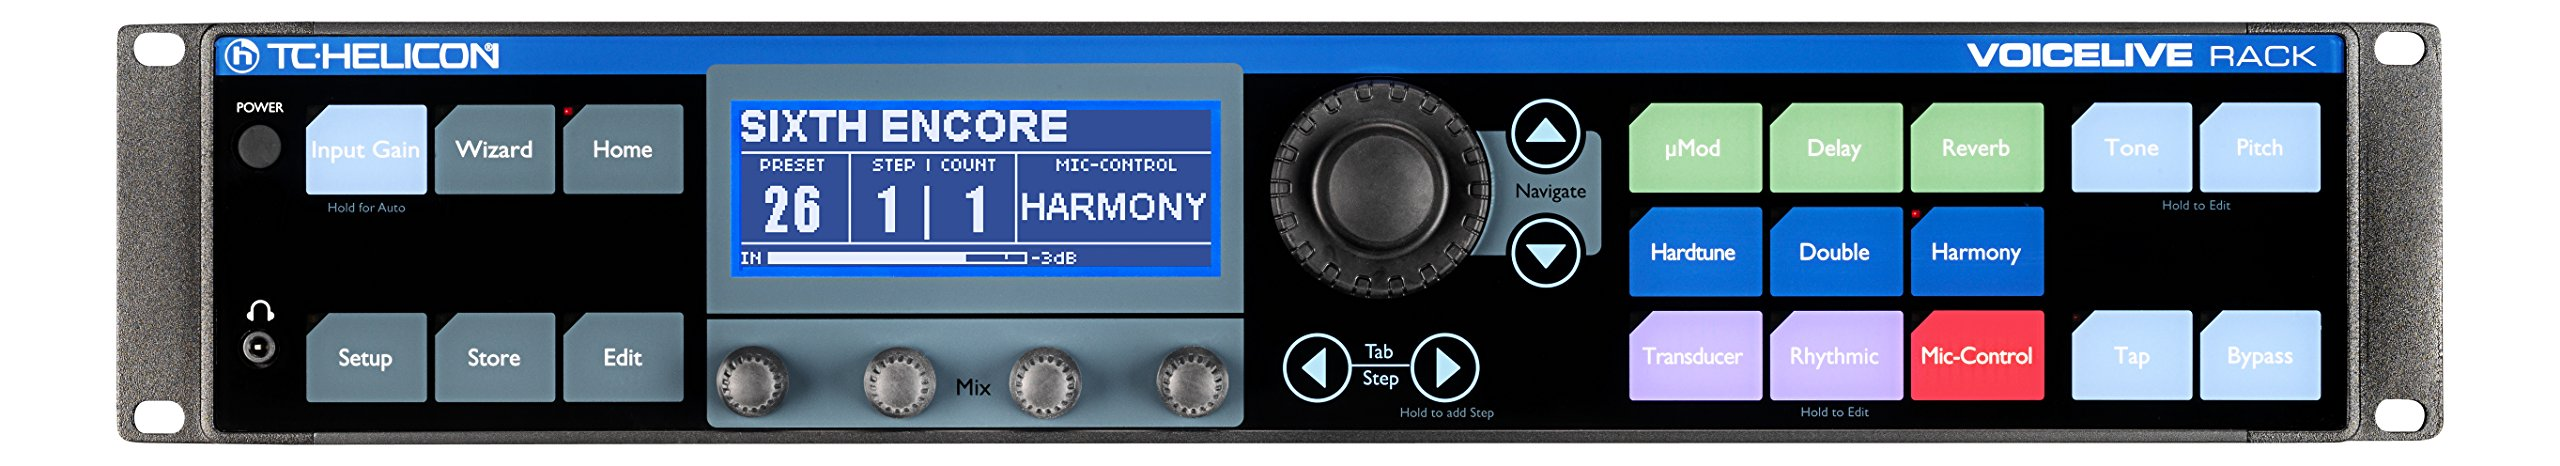 TC Helicon 996355005 Voice Live Rack